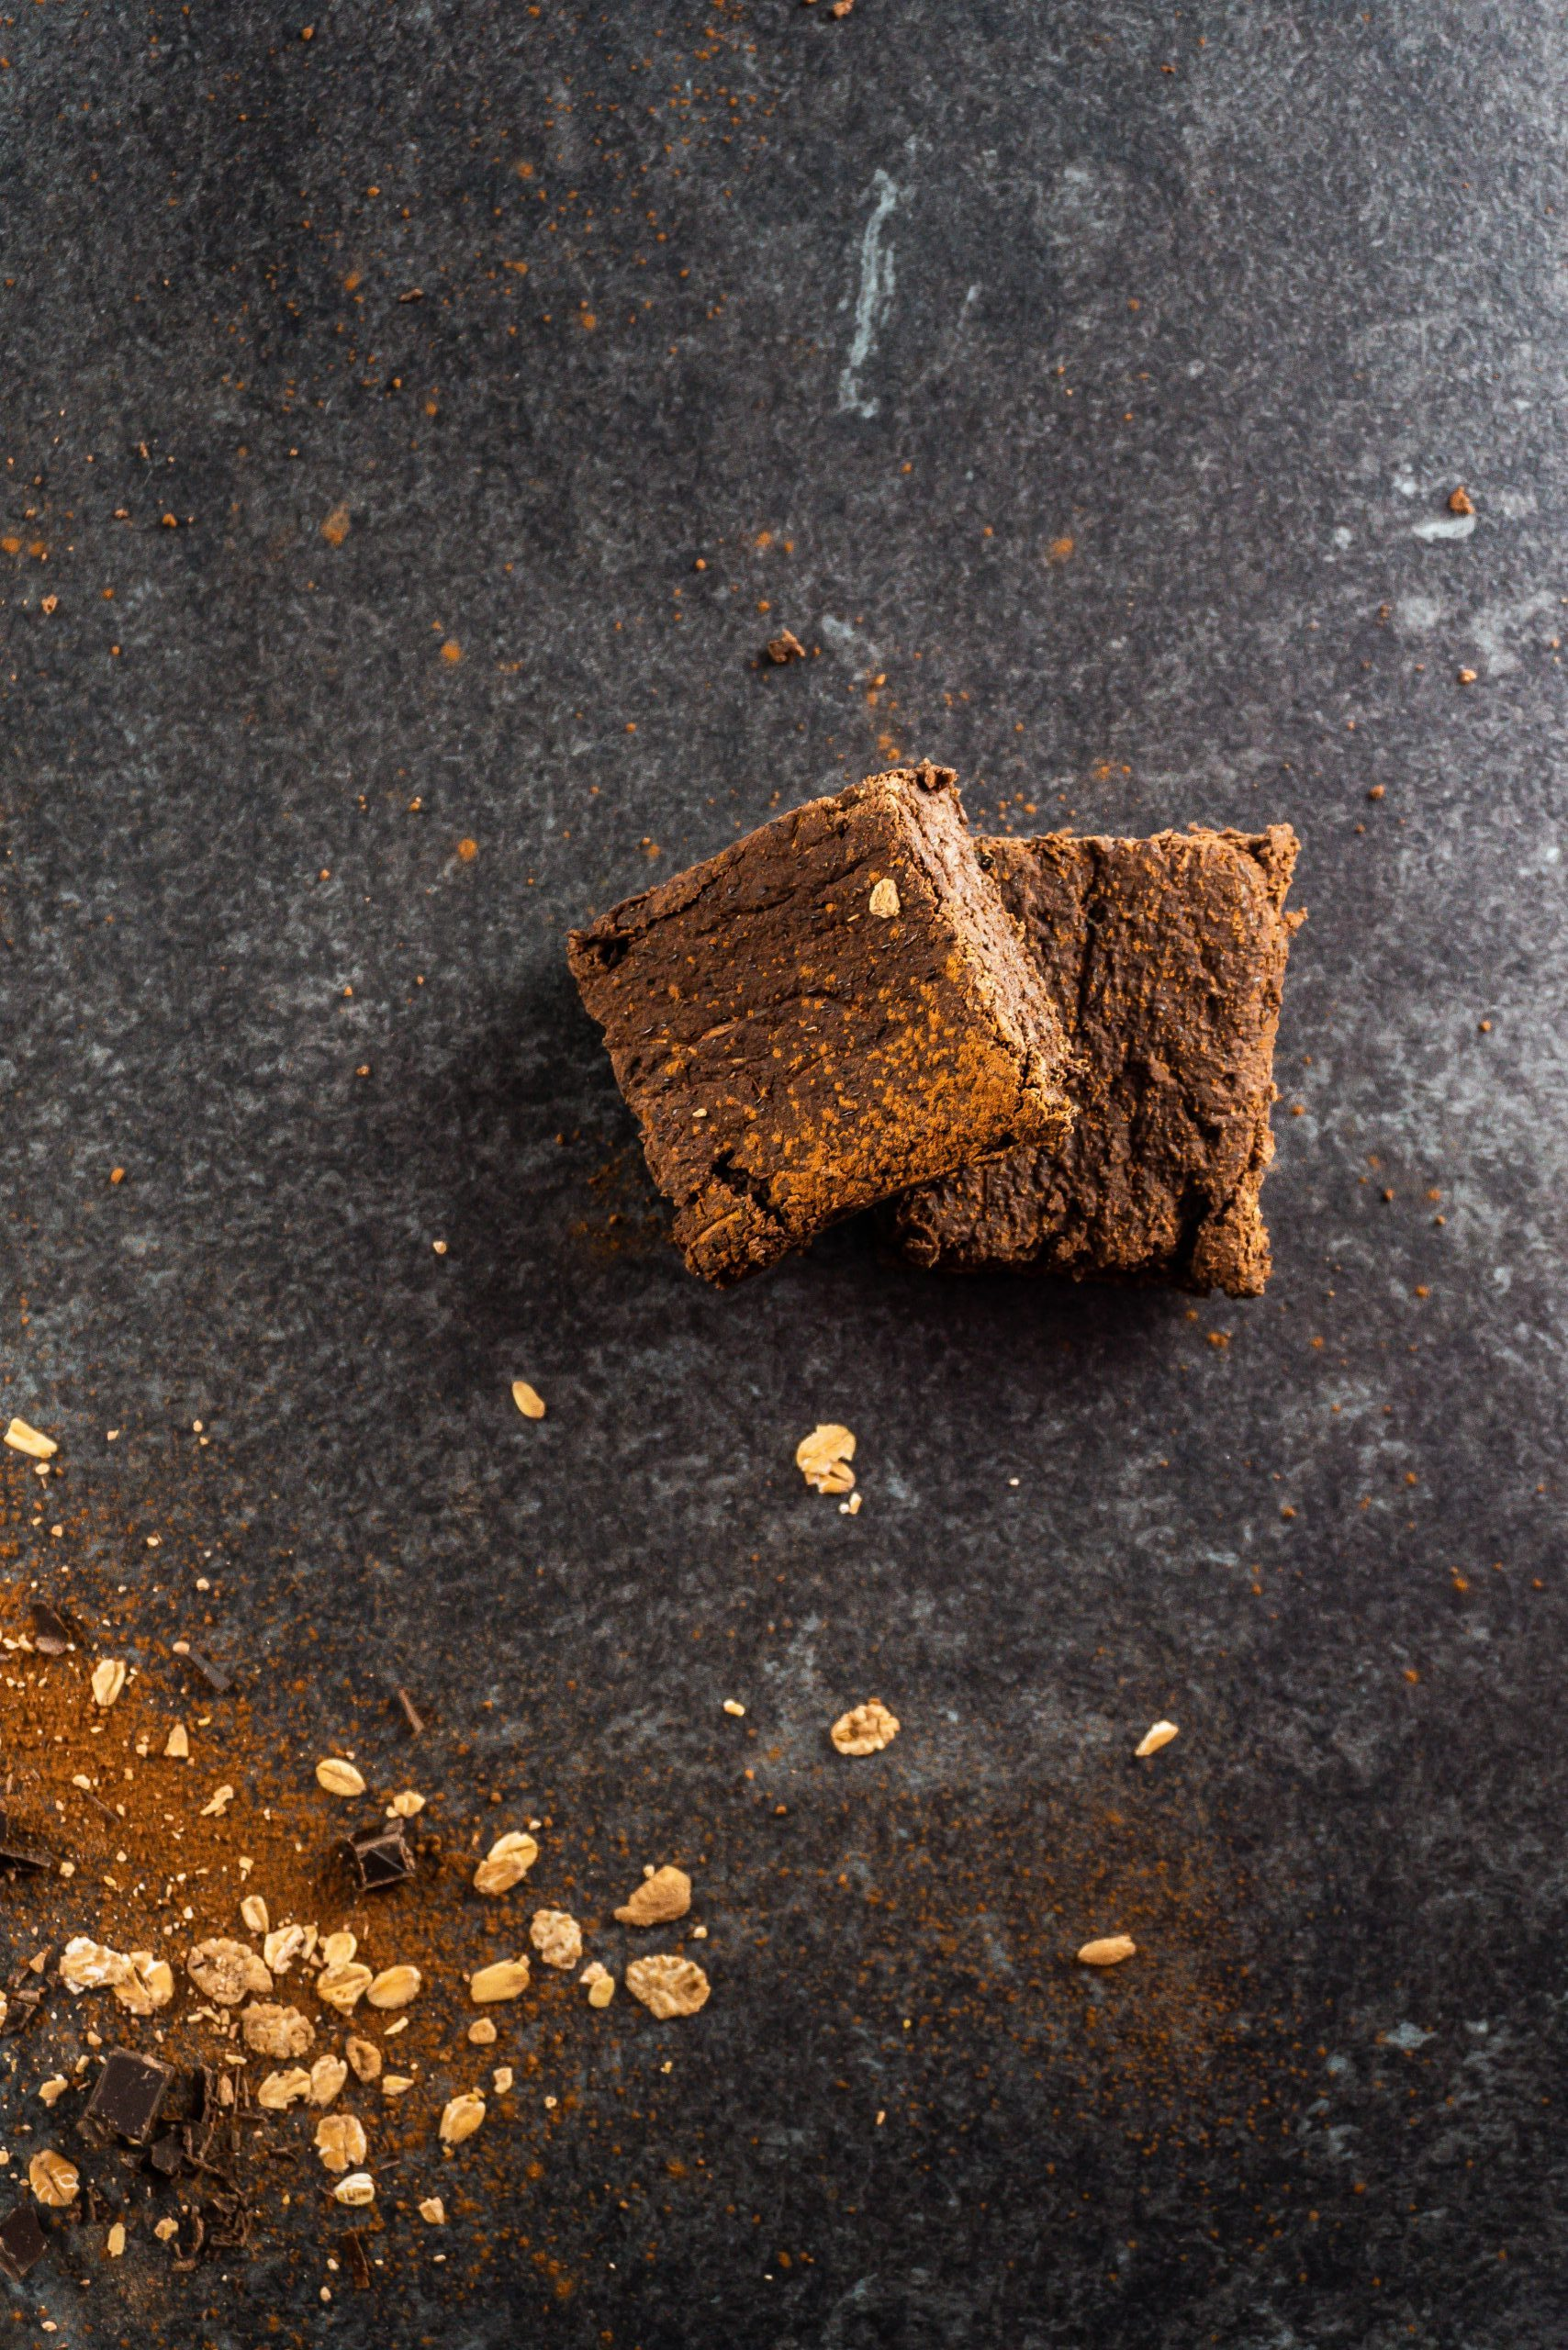 Vegan and Gluten-free Zucchini Brownies on a dark background surrounded by scattered cocoa powder, chocolate pieces, and oats